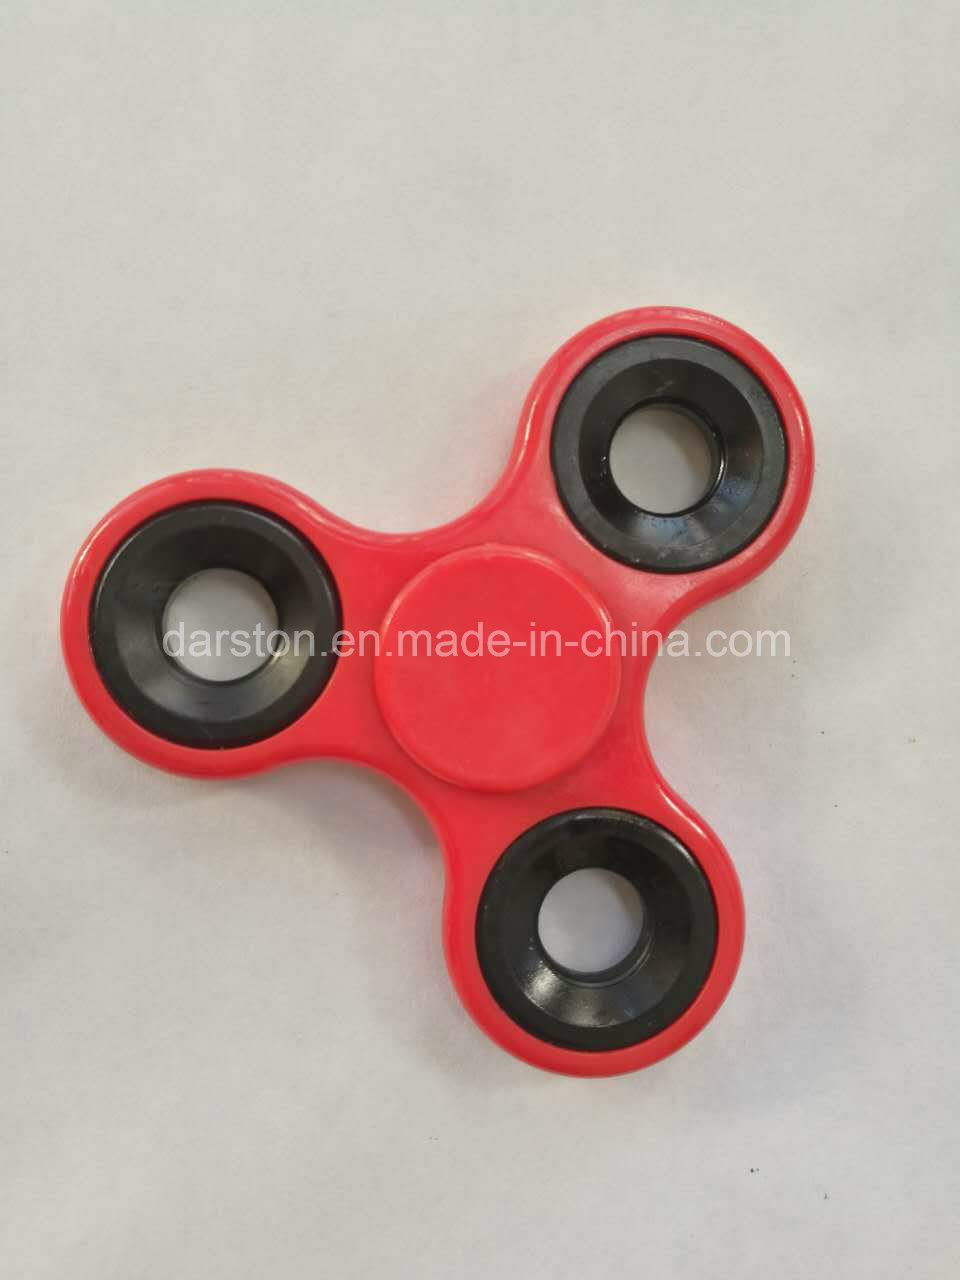 2017 Top Selling Plastic Hand Toy Fidget Spinner Finger Spinner PL30